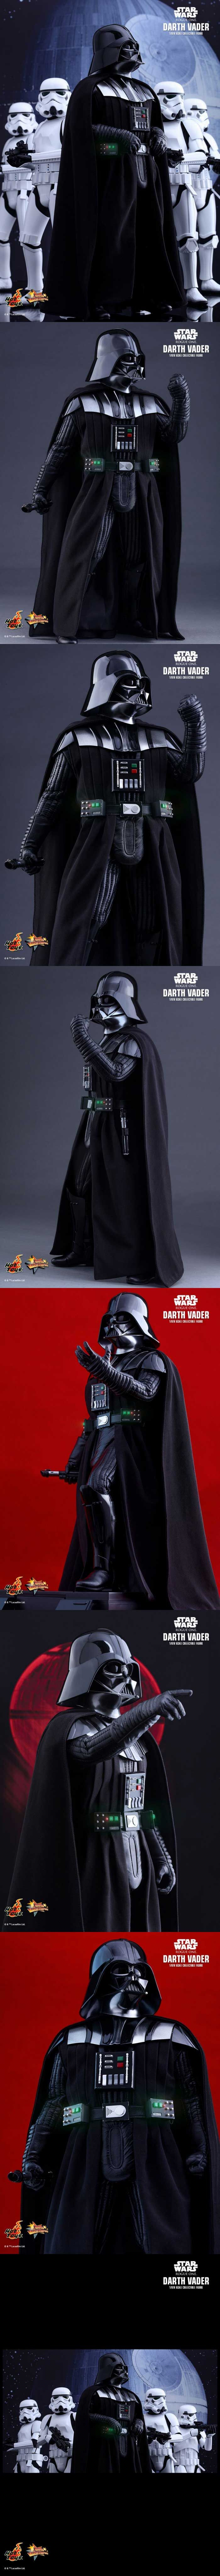 [Rogue One: A Star Wars Story - 1/6th scale Darth Vader Figure]